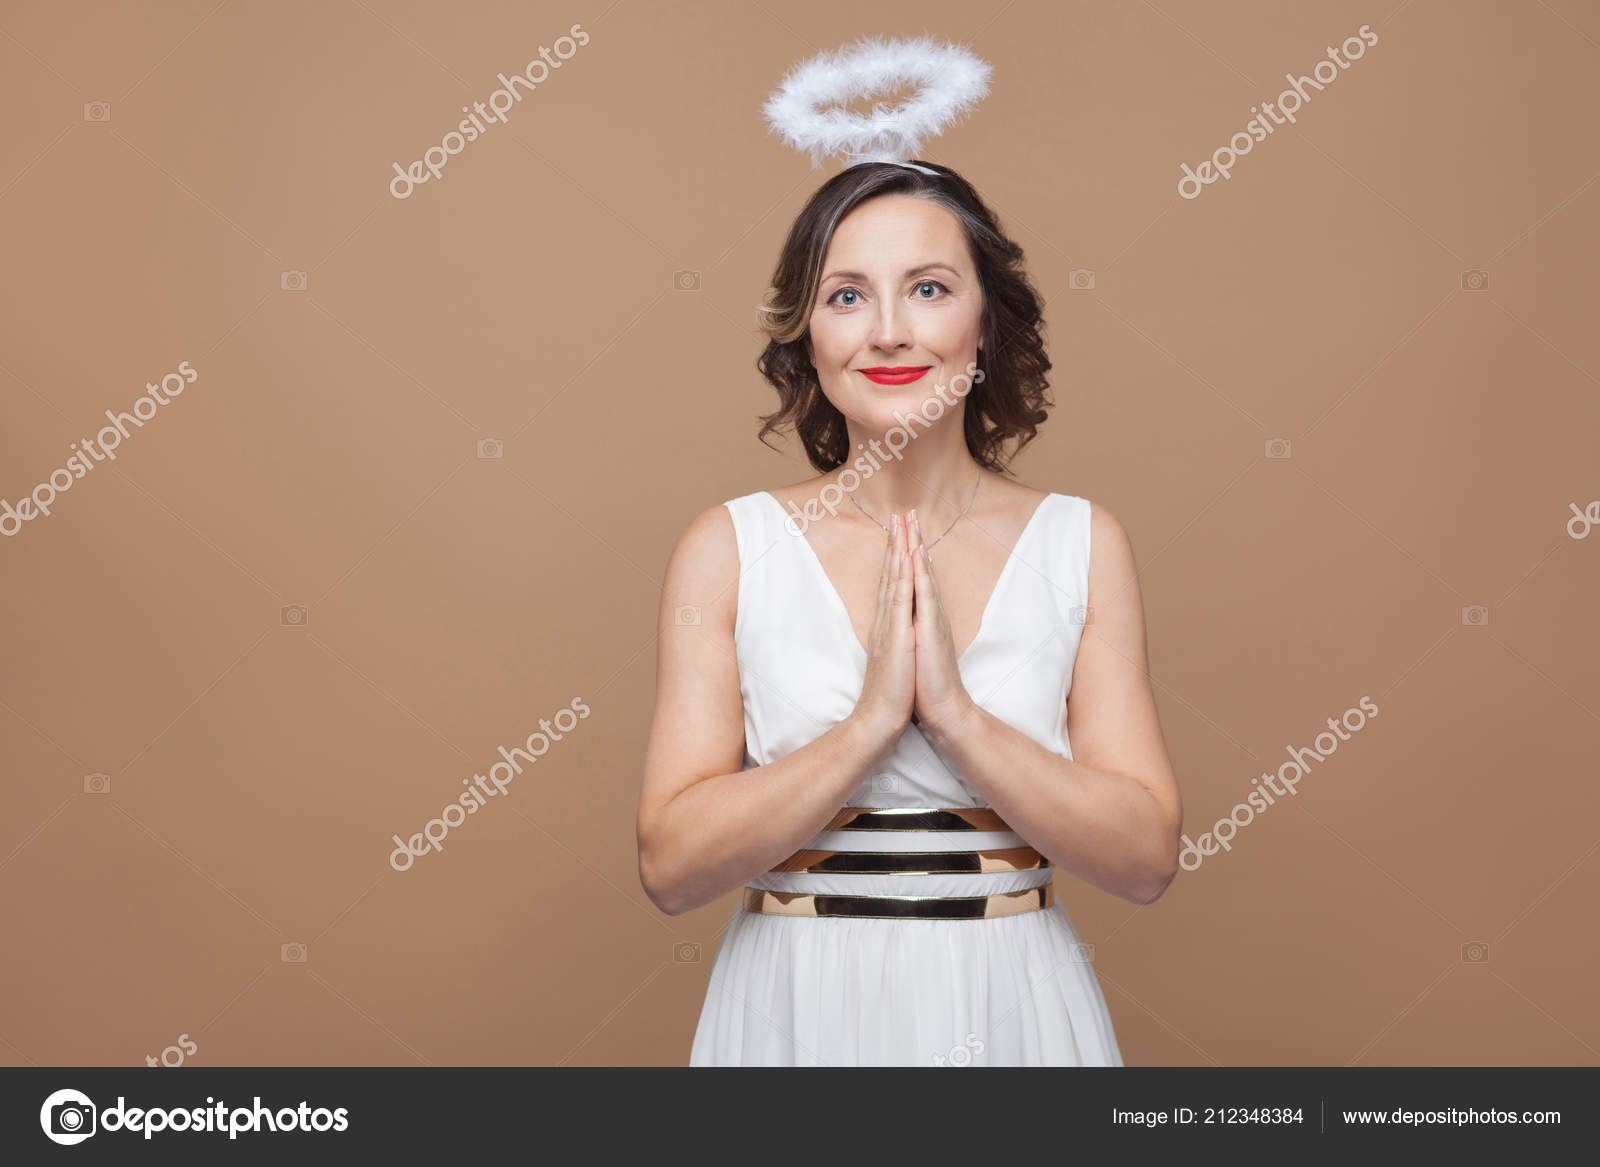 Elegant Angel Brunette Woman White Dress Nimbus Head Praying Looking Stock Photo